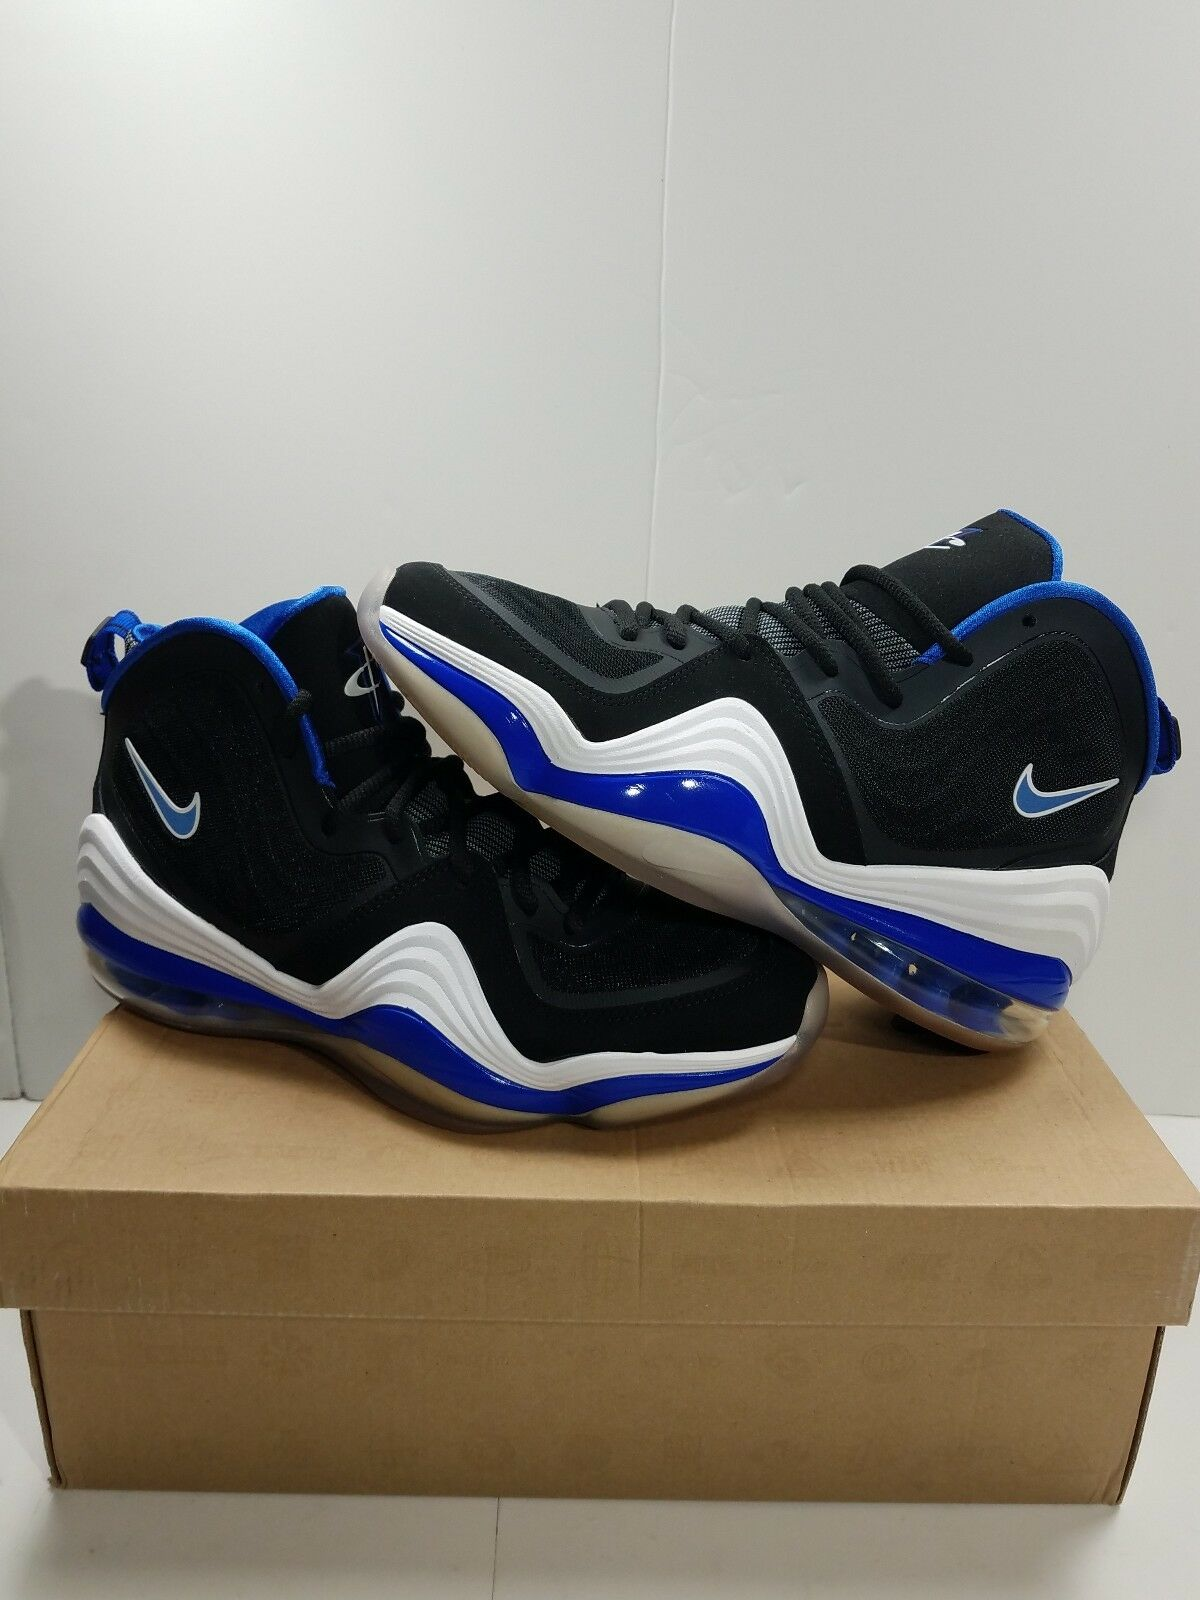 Nike Air Penny V Price reduction 537331-040 AUTHENTIC w/reciept. Seasonal price cuts, discount benefits